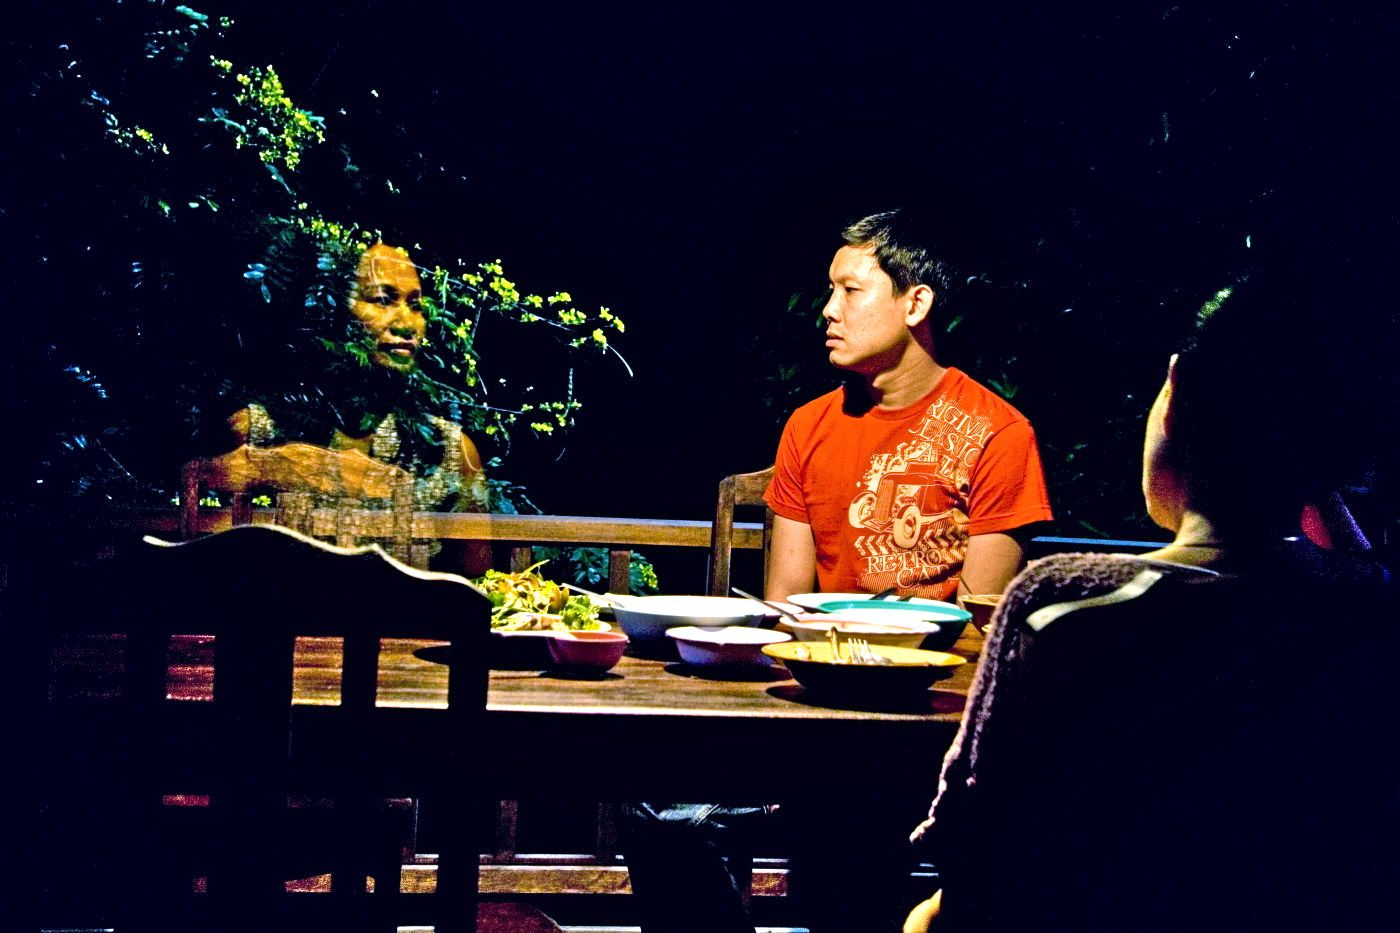 San Diego Asian Film Festival 2010: Uncle Boonmee Who Can Recall His Past Lives